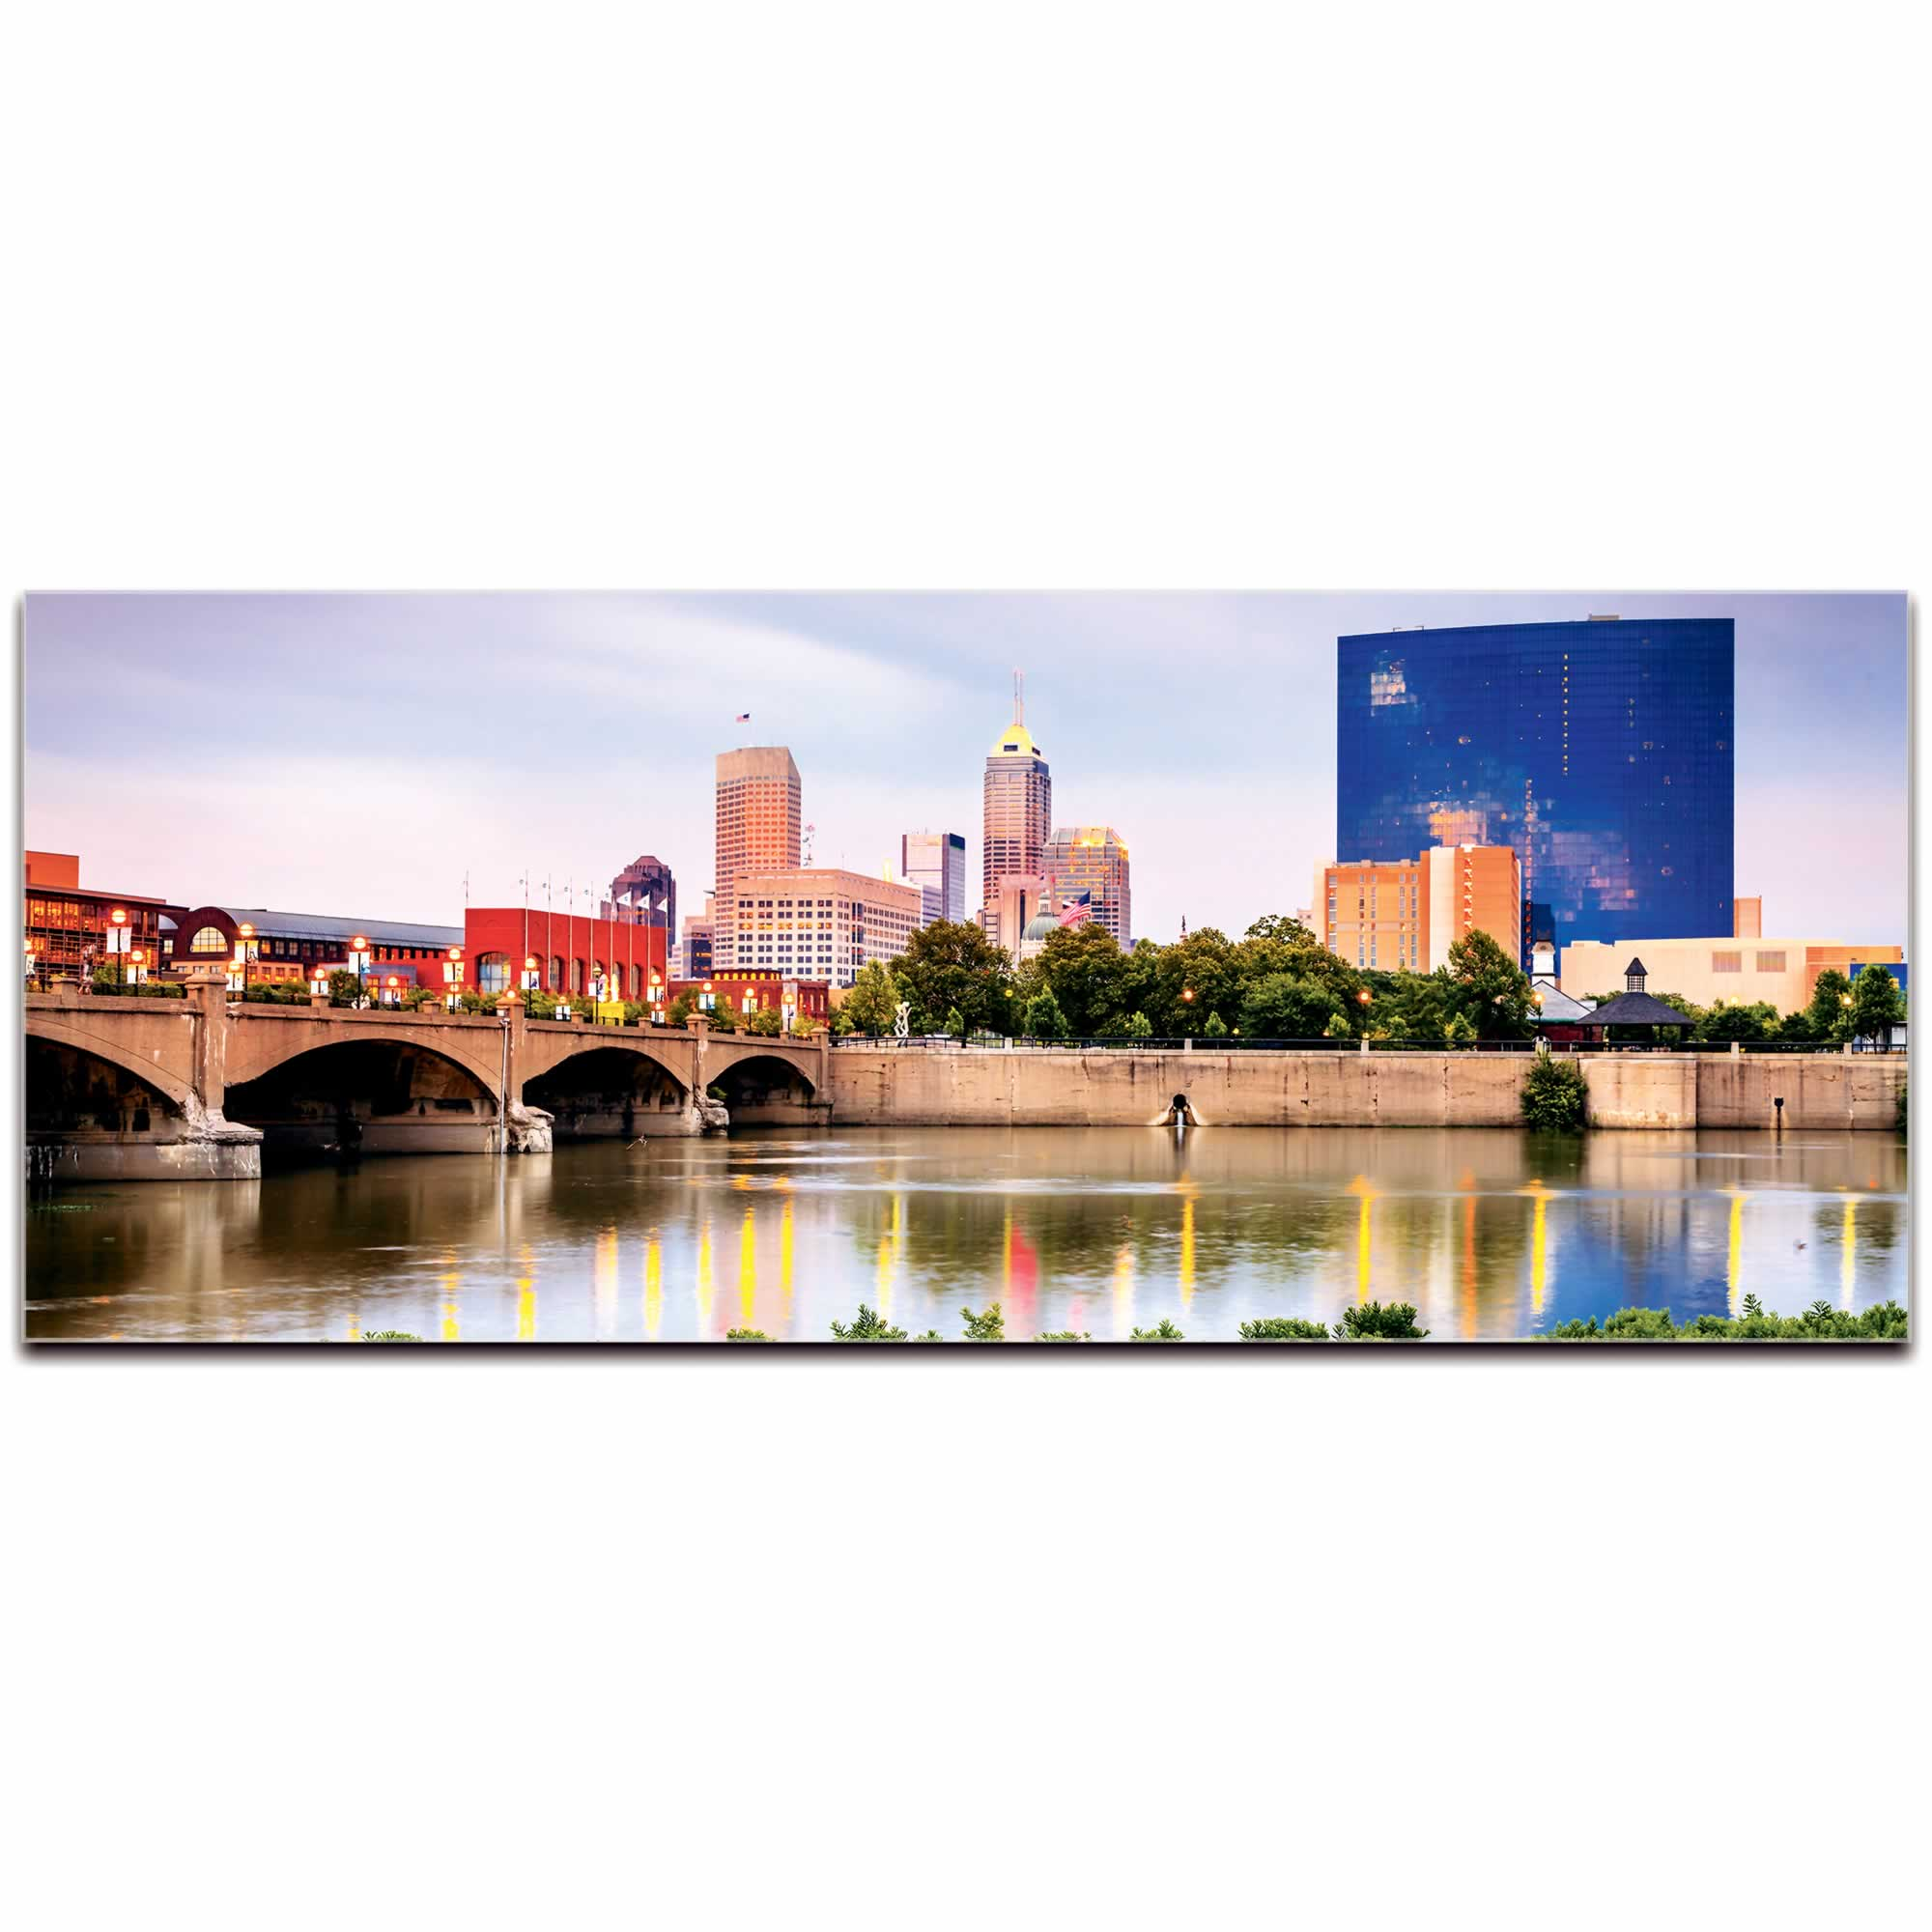 Indianapolis City Skyline - Urban Modern Art, Designer Home Decor, Cityscape Wall Artwork, Trendy Contemporary Art